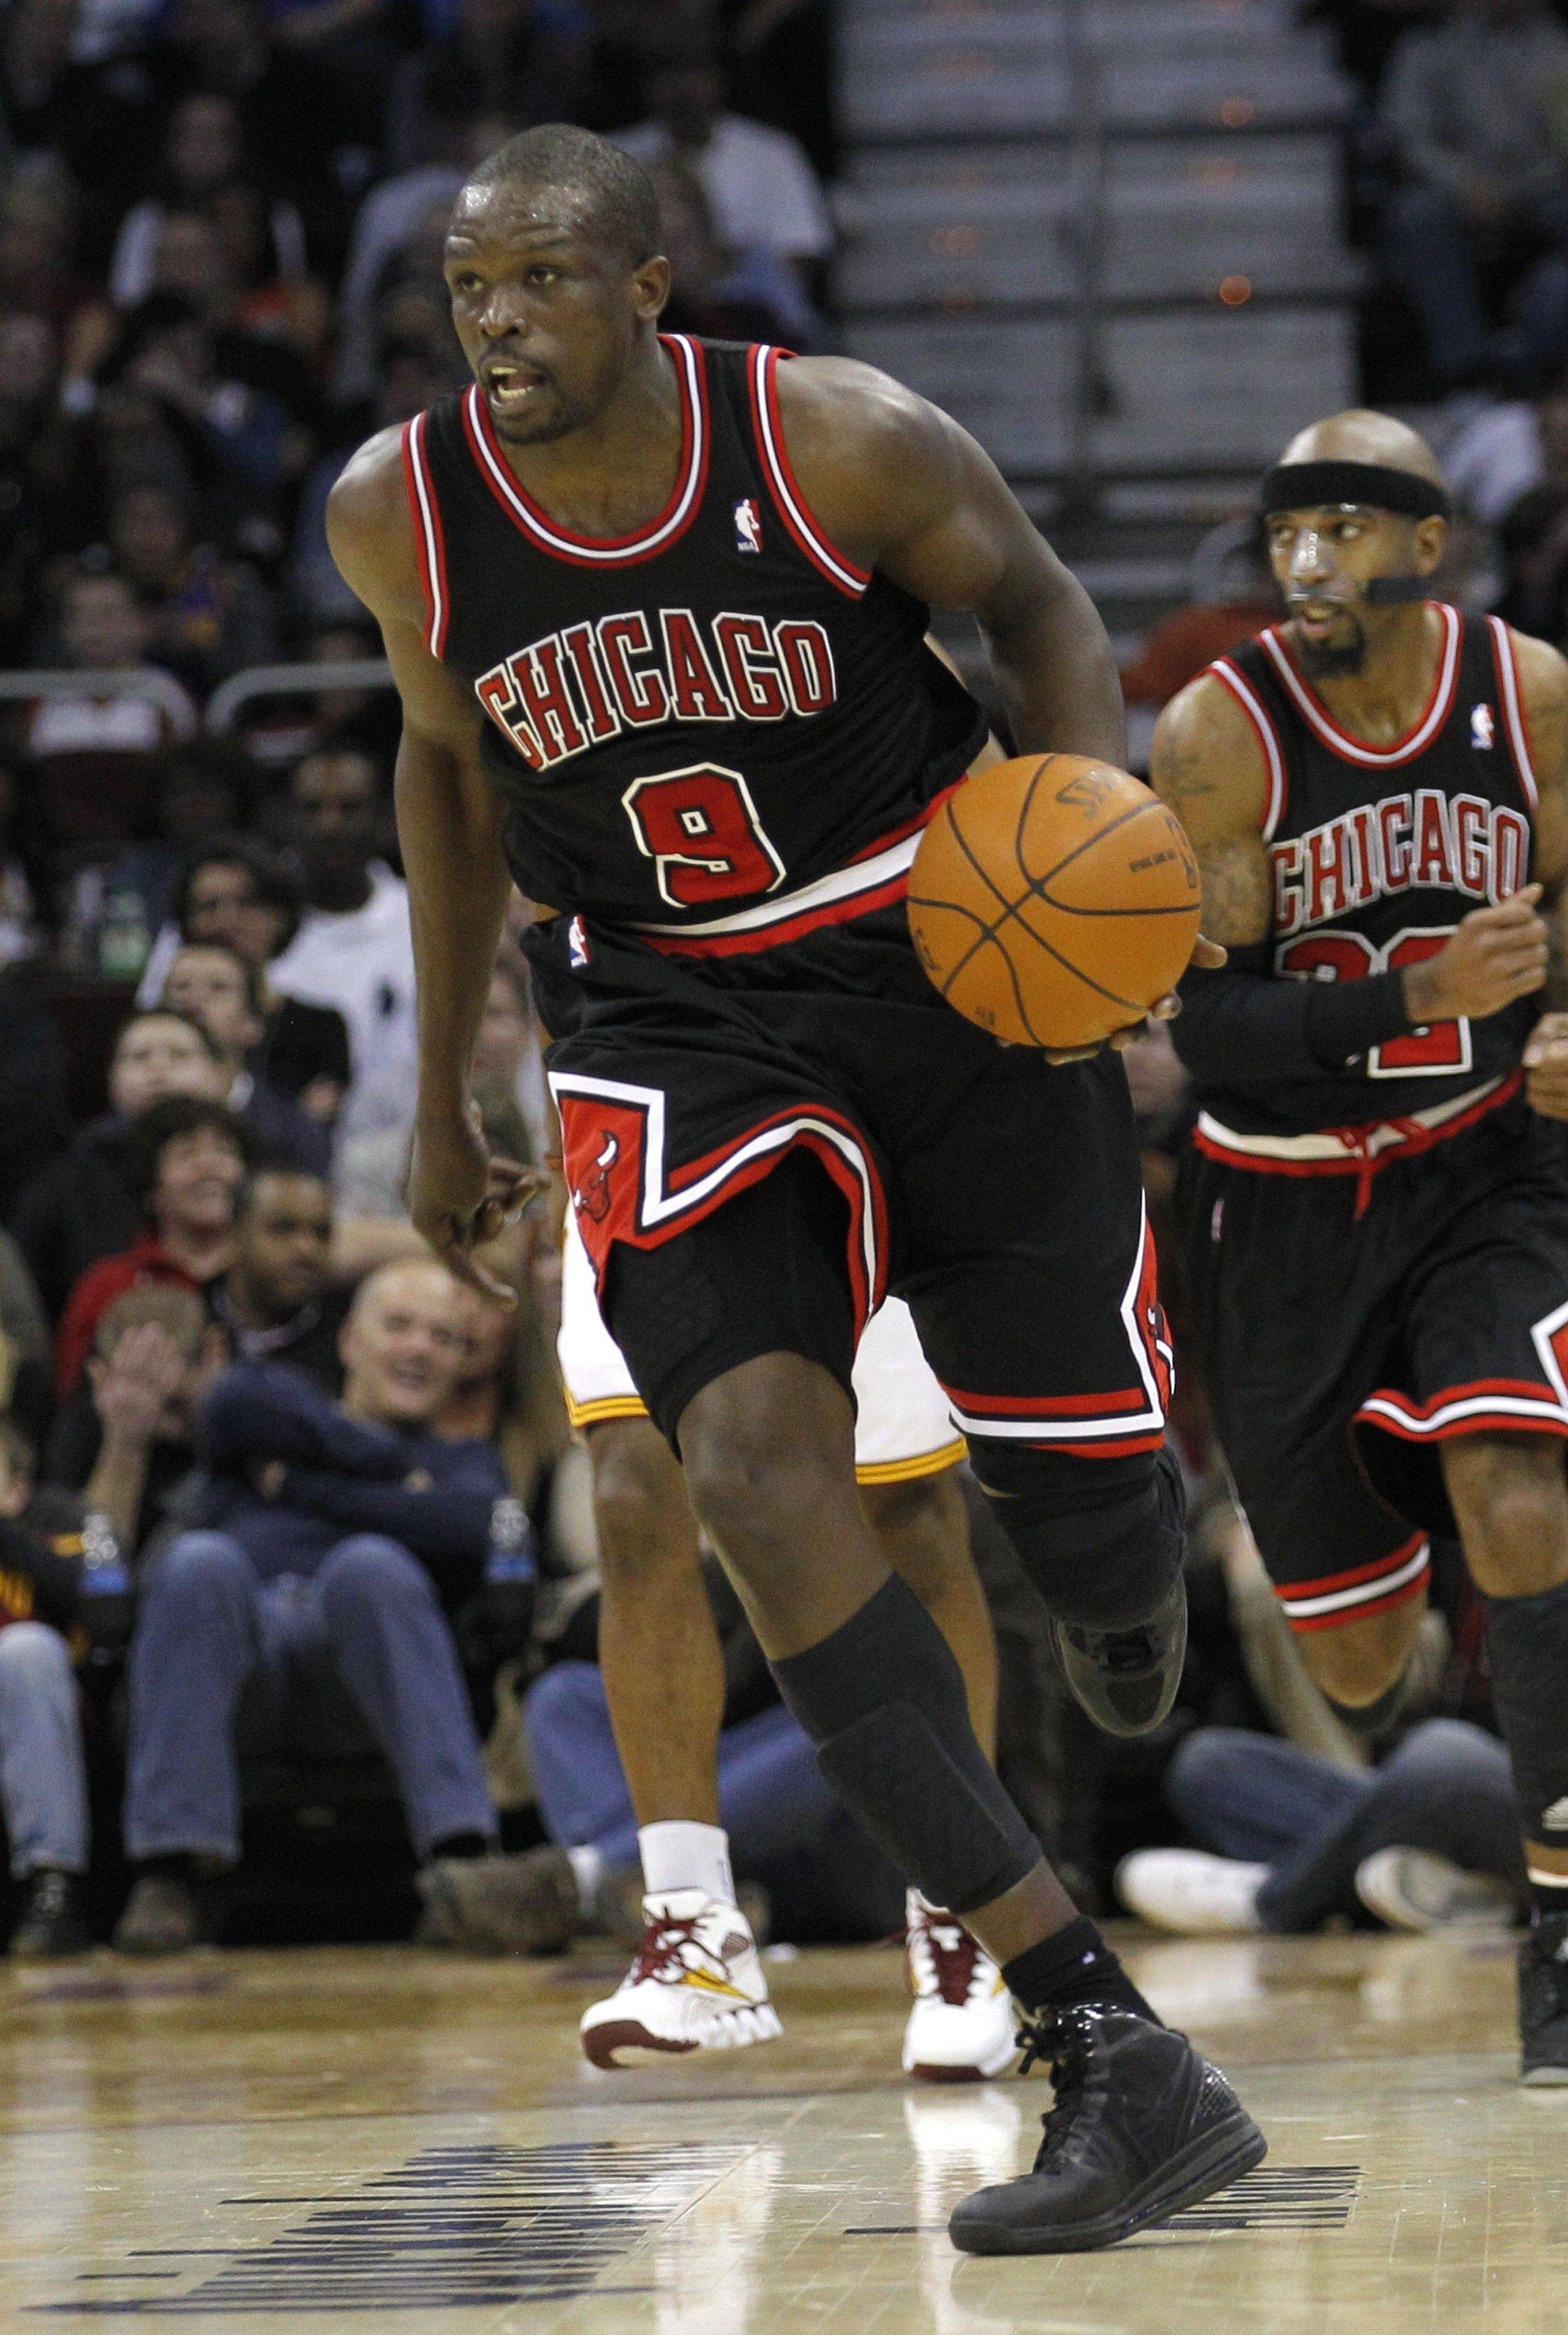 The Chicago Bulls don't know when Luol Deng will return to the lineup as he recovers from a torn ligament in his left wrist, but they do know he doesn't plan to have surgery on it.